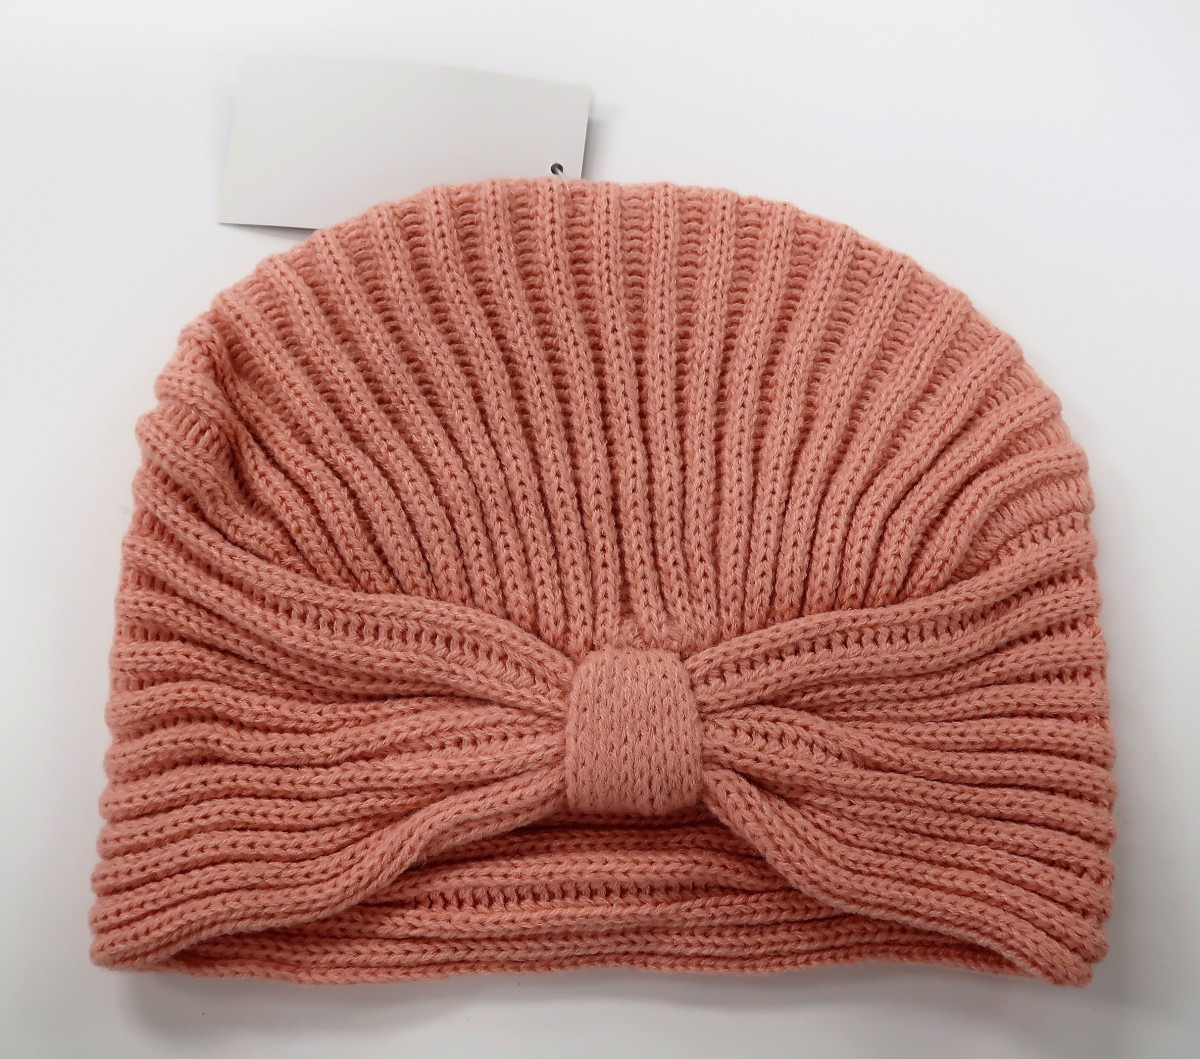 99819ba76d1 More Views. 1. PrevNext. KBB Pink Striated Design Knottled Beanie Hat (3  Hats Lot)